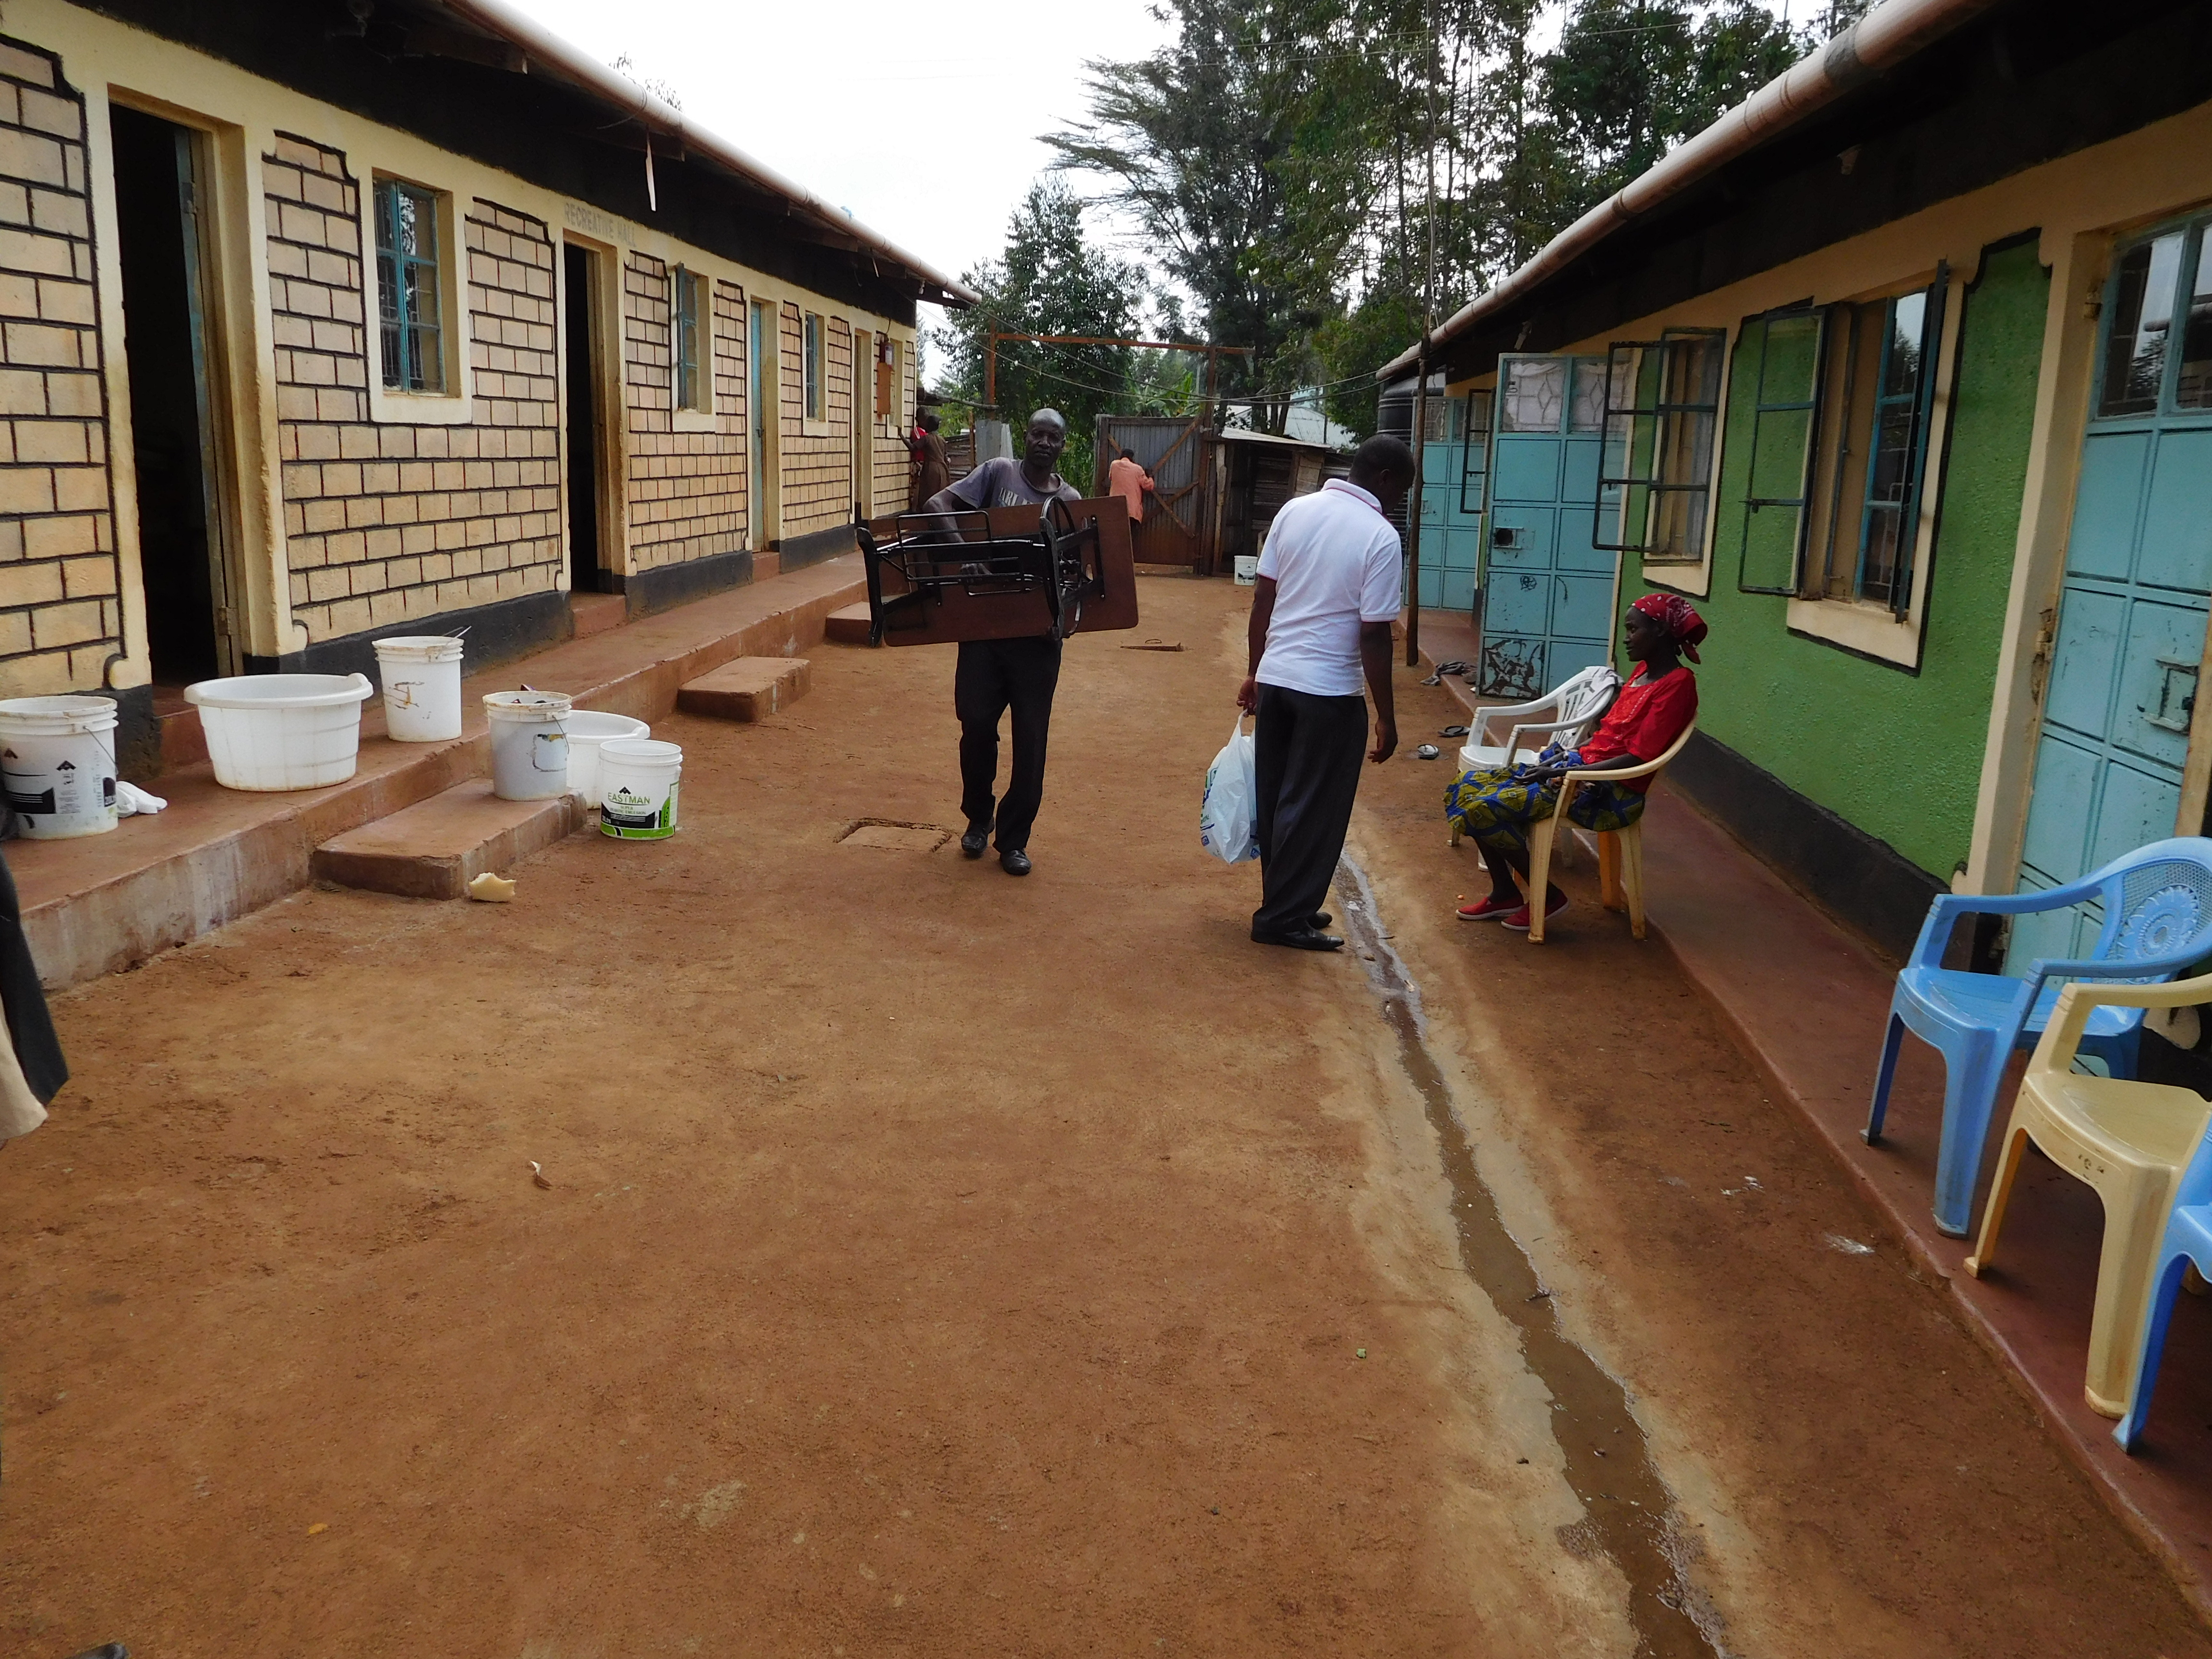 A home for the fatherless and orphaned children called Faithful Children Center.